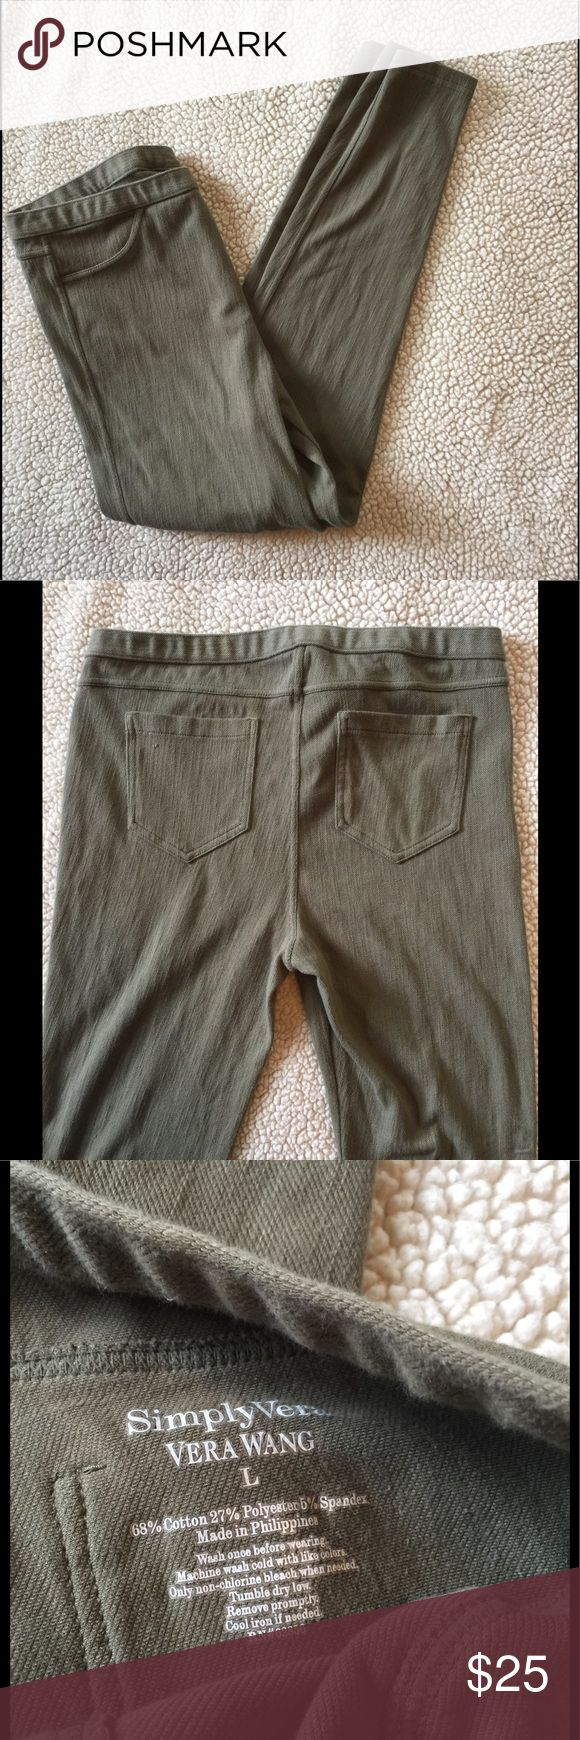 Simply Vera Jeggings Great condition. Soft and stretchy, ankle grazer. Simply Vera Vera Wang Pants Leggings